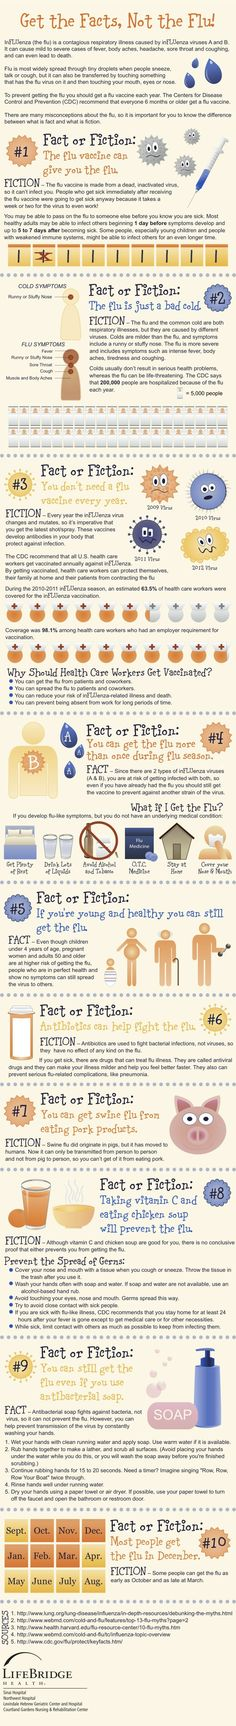 American flu infographic